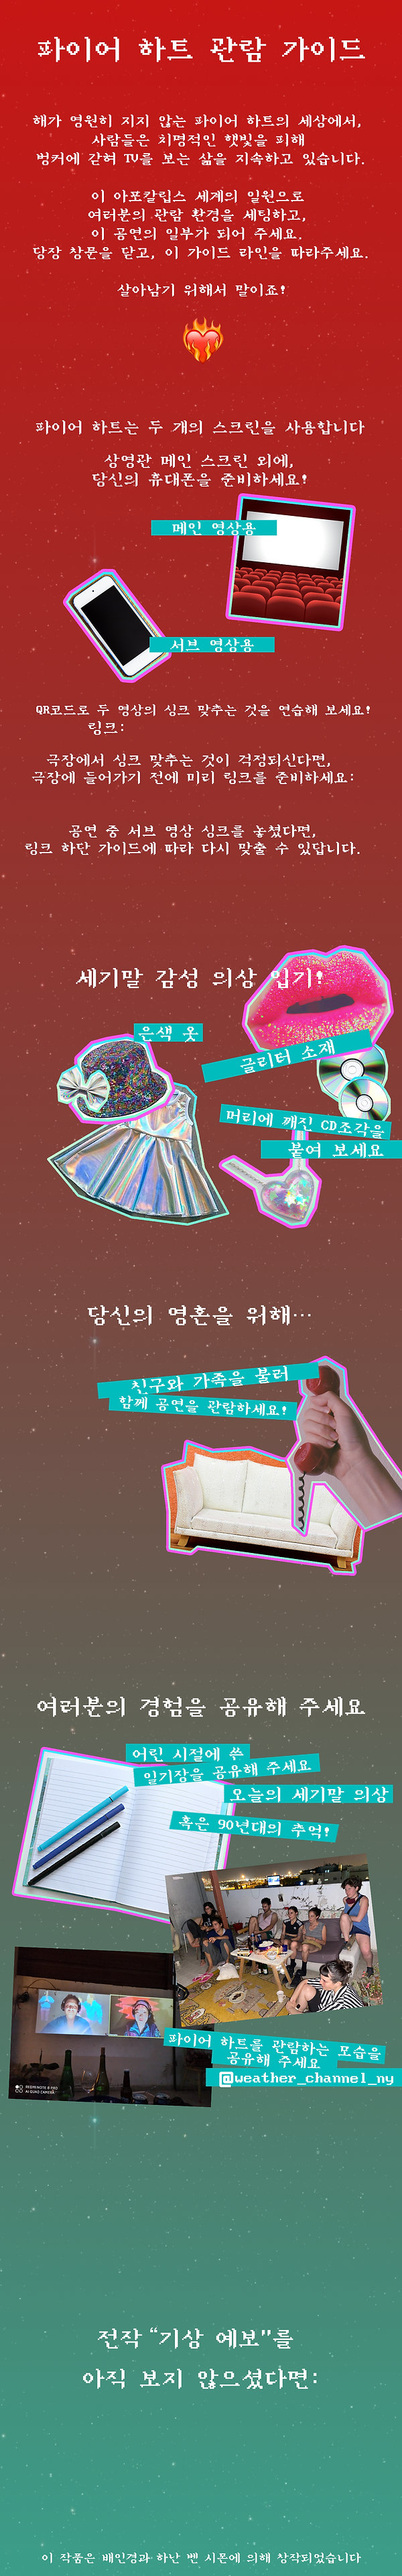 210701_FH_preshow_forTheater_KR.png